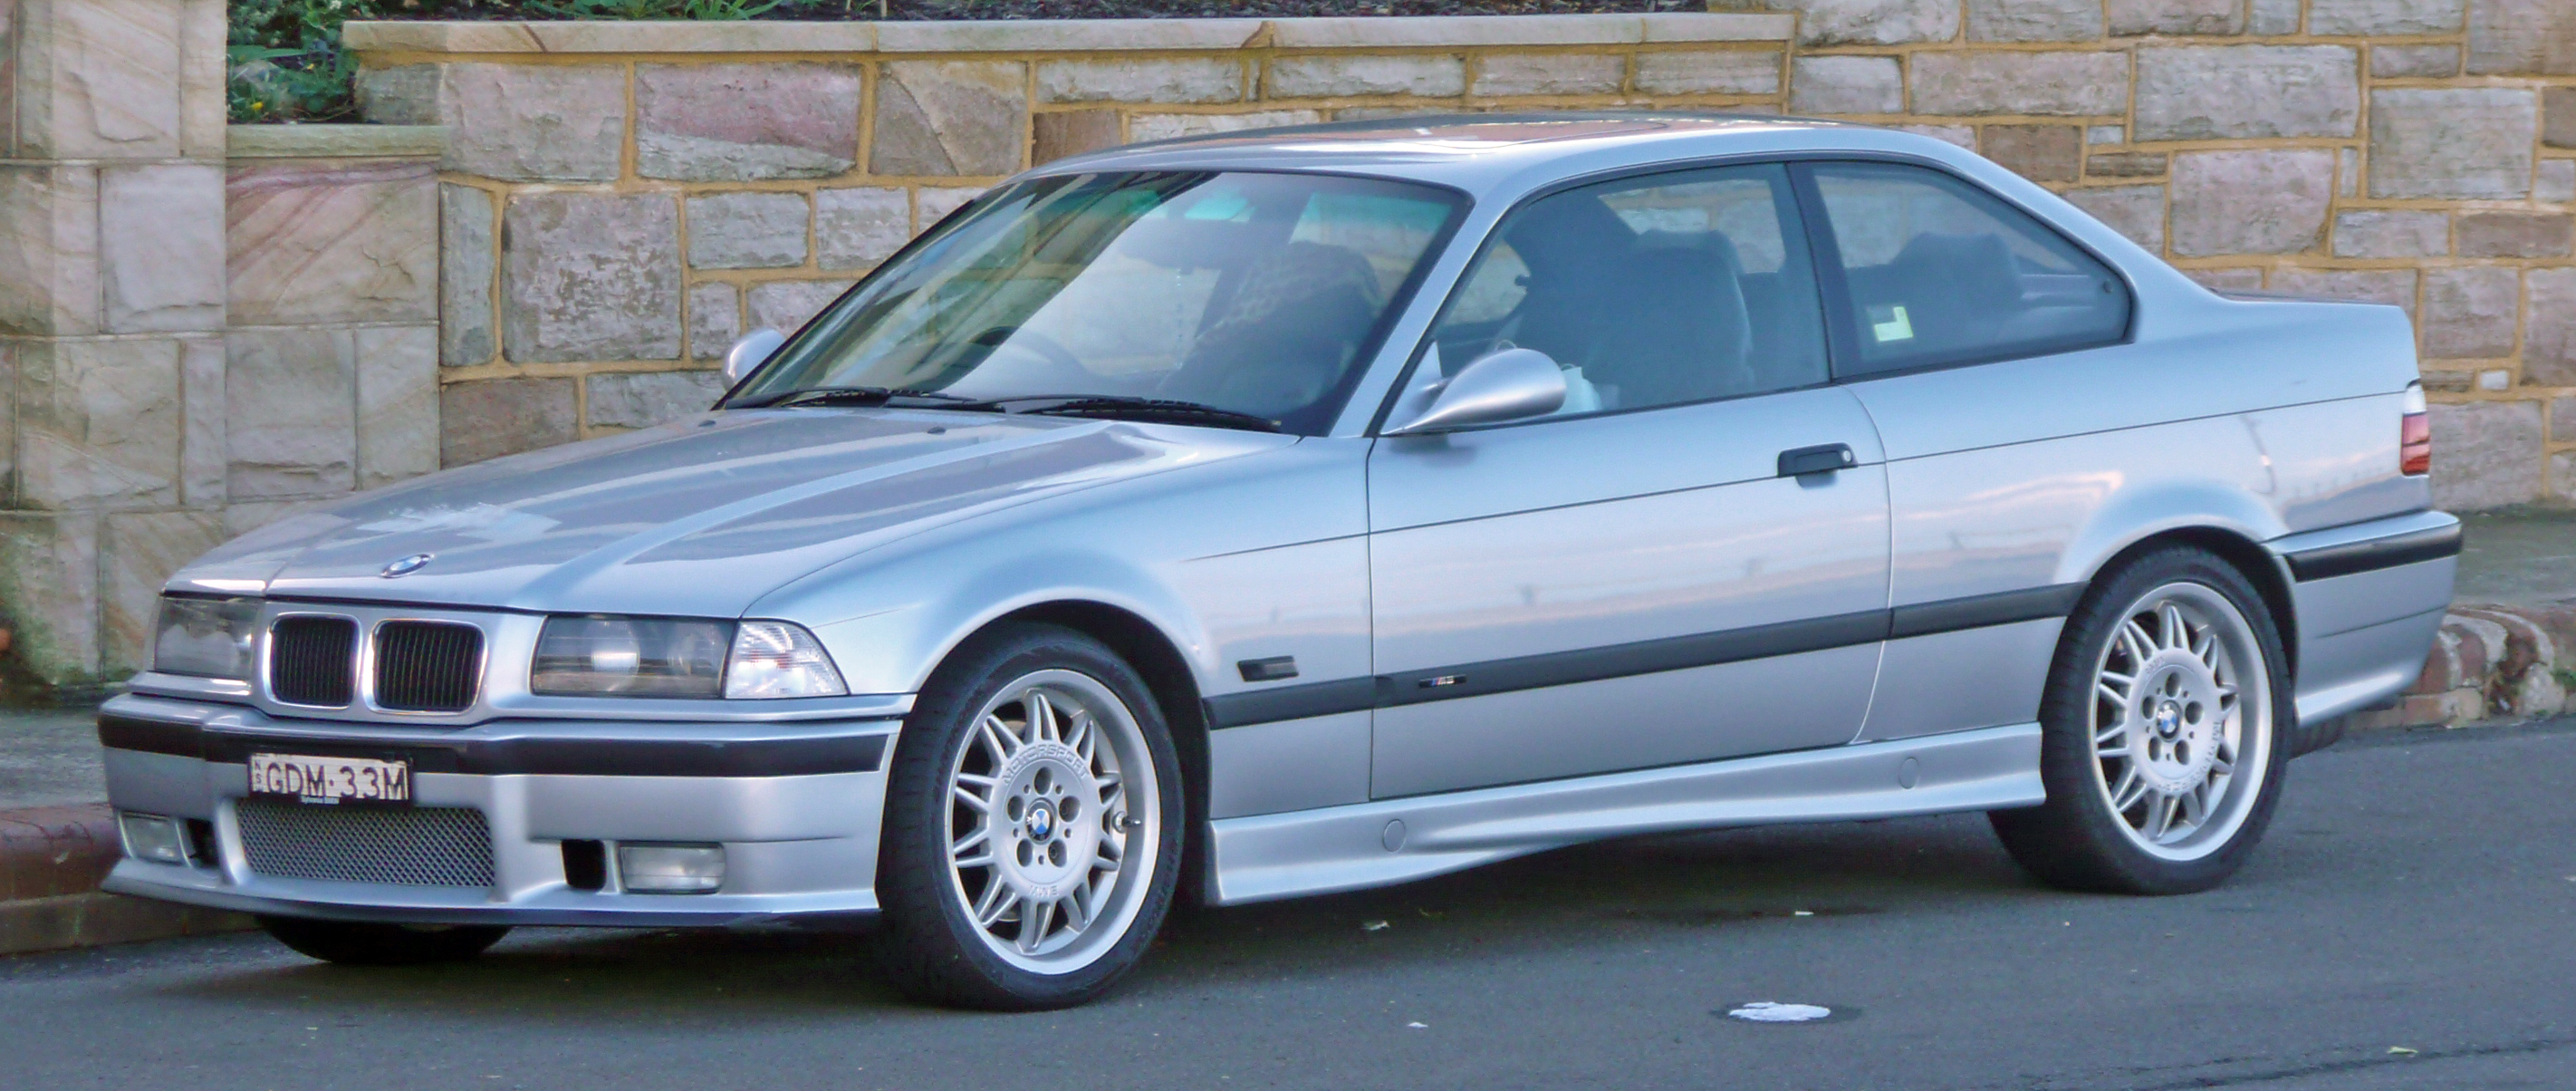 1996 bmw m3 coupe e36 pictures information and specs auto. Black Bedroom Furniture Sets. Home Design Ideas